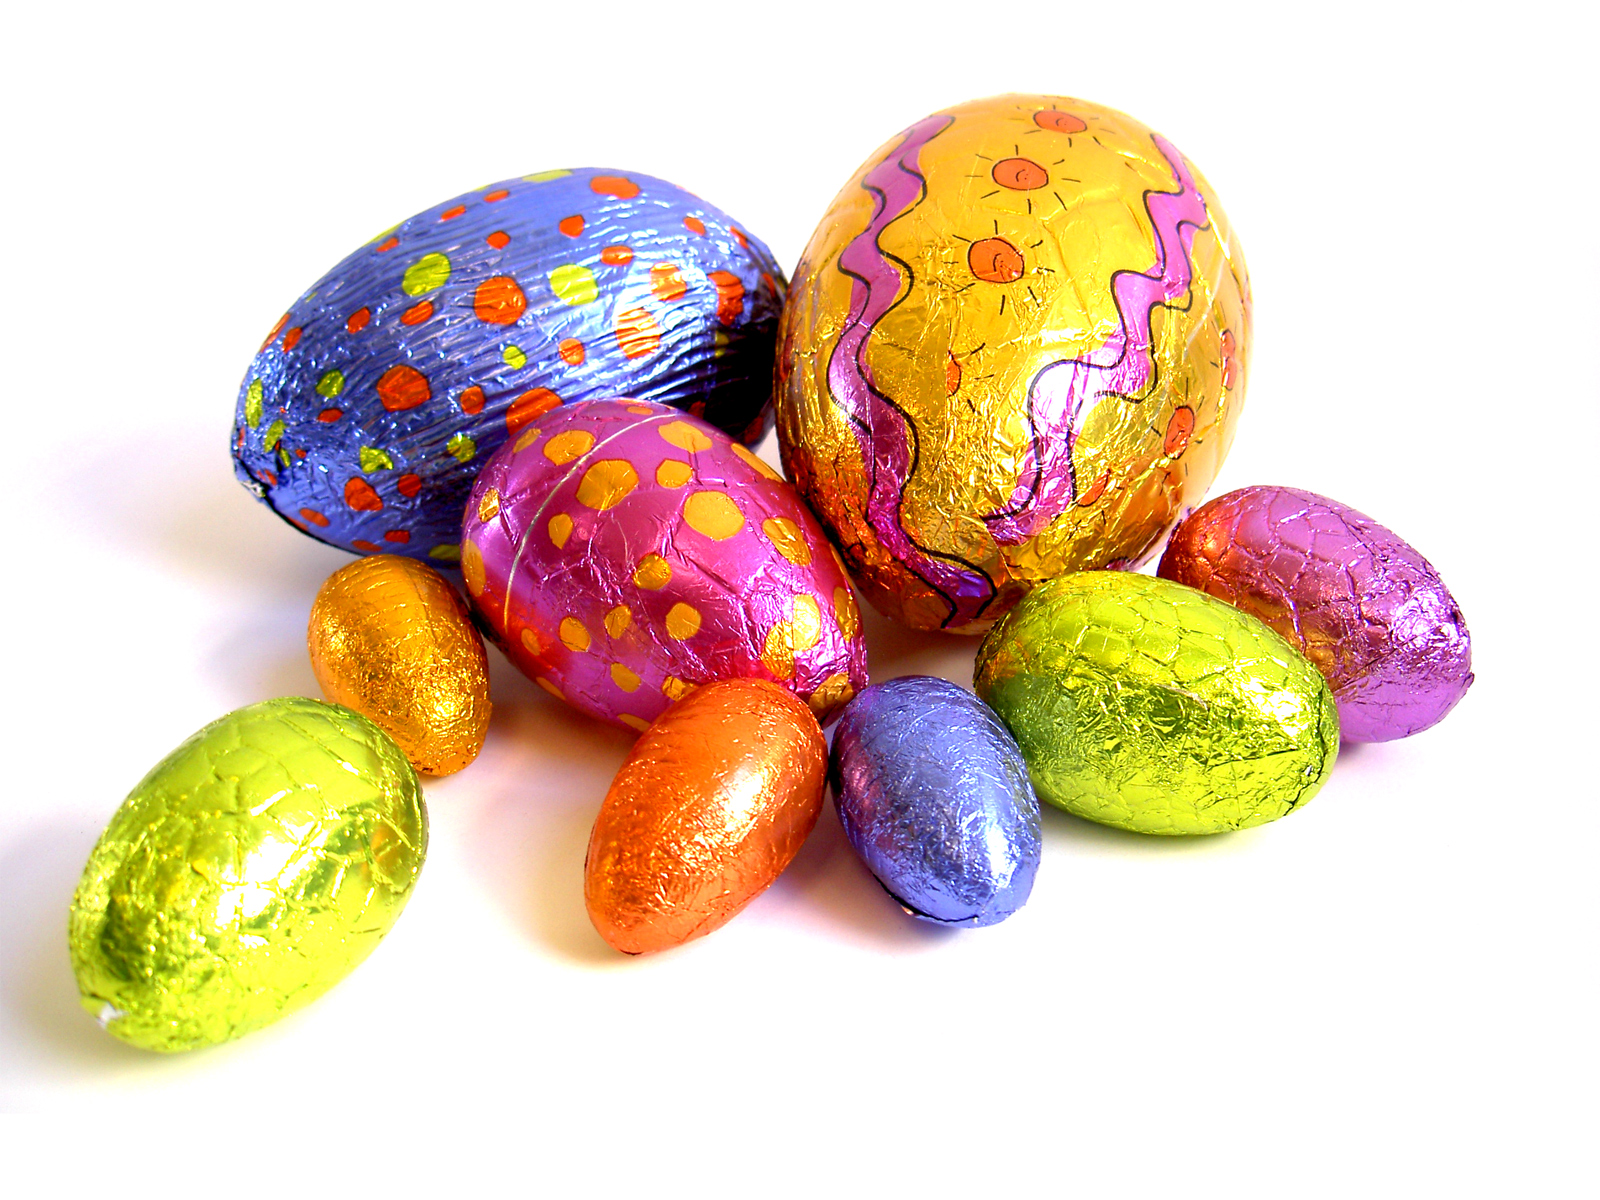 Nisa shoppers invited to join 'eggciting' Easter event